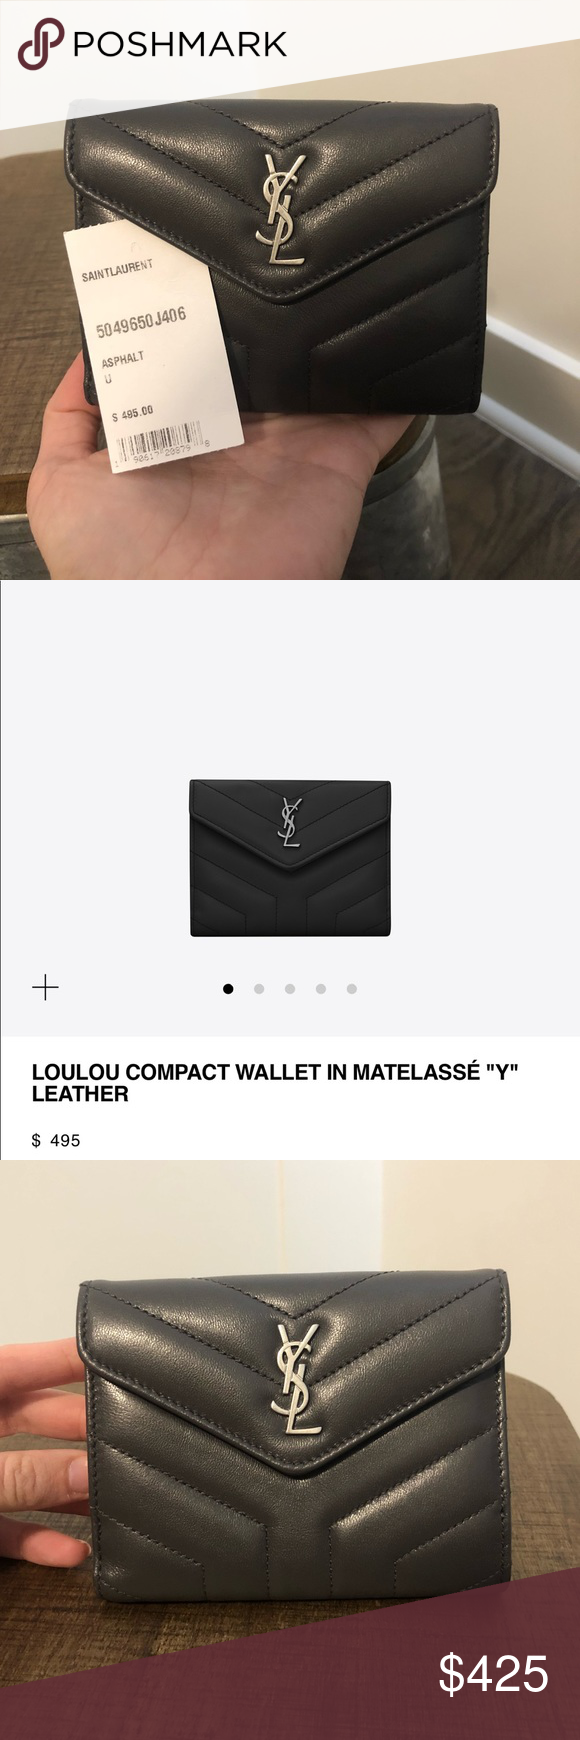 bcb0126691 YSL LouLou Compact Wallet Never been used, authentic Saint Laurent ...